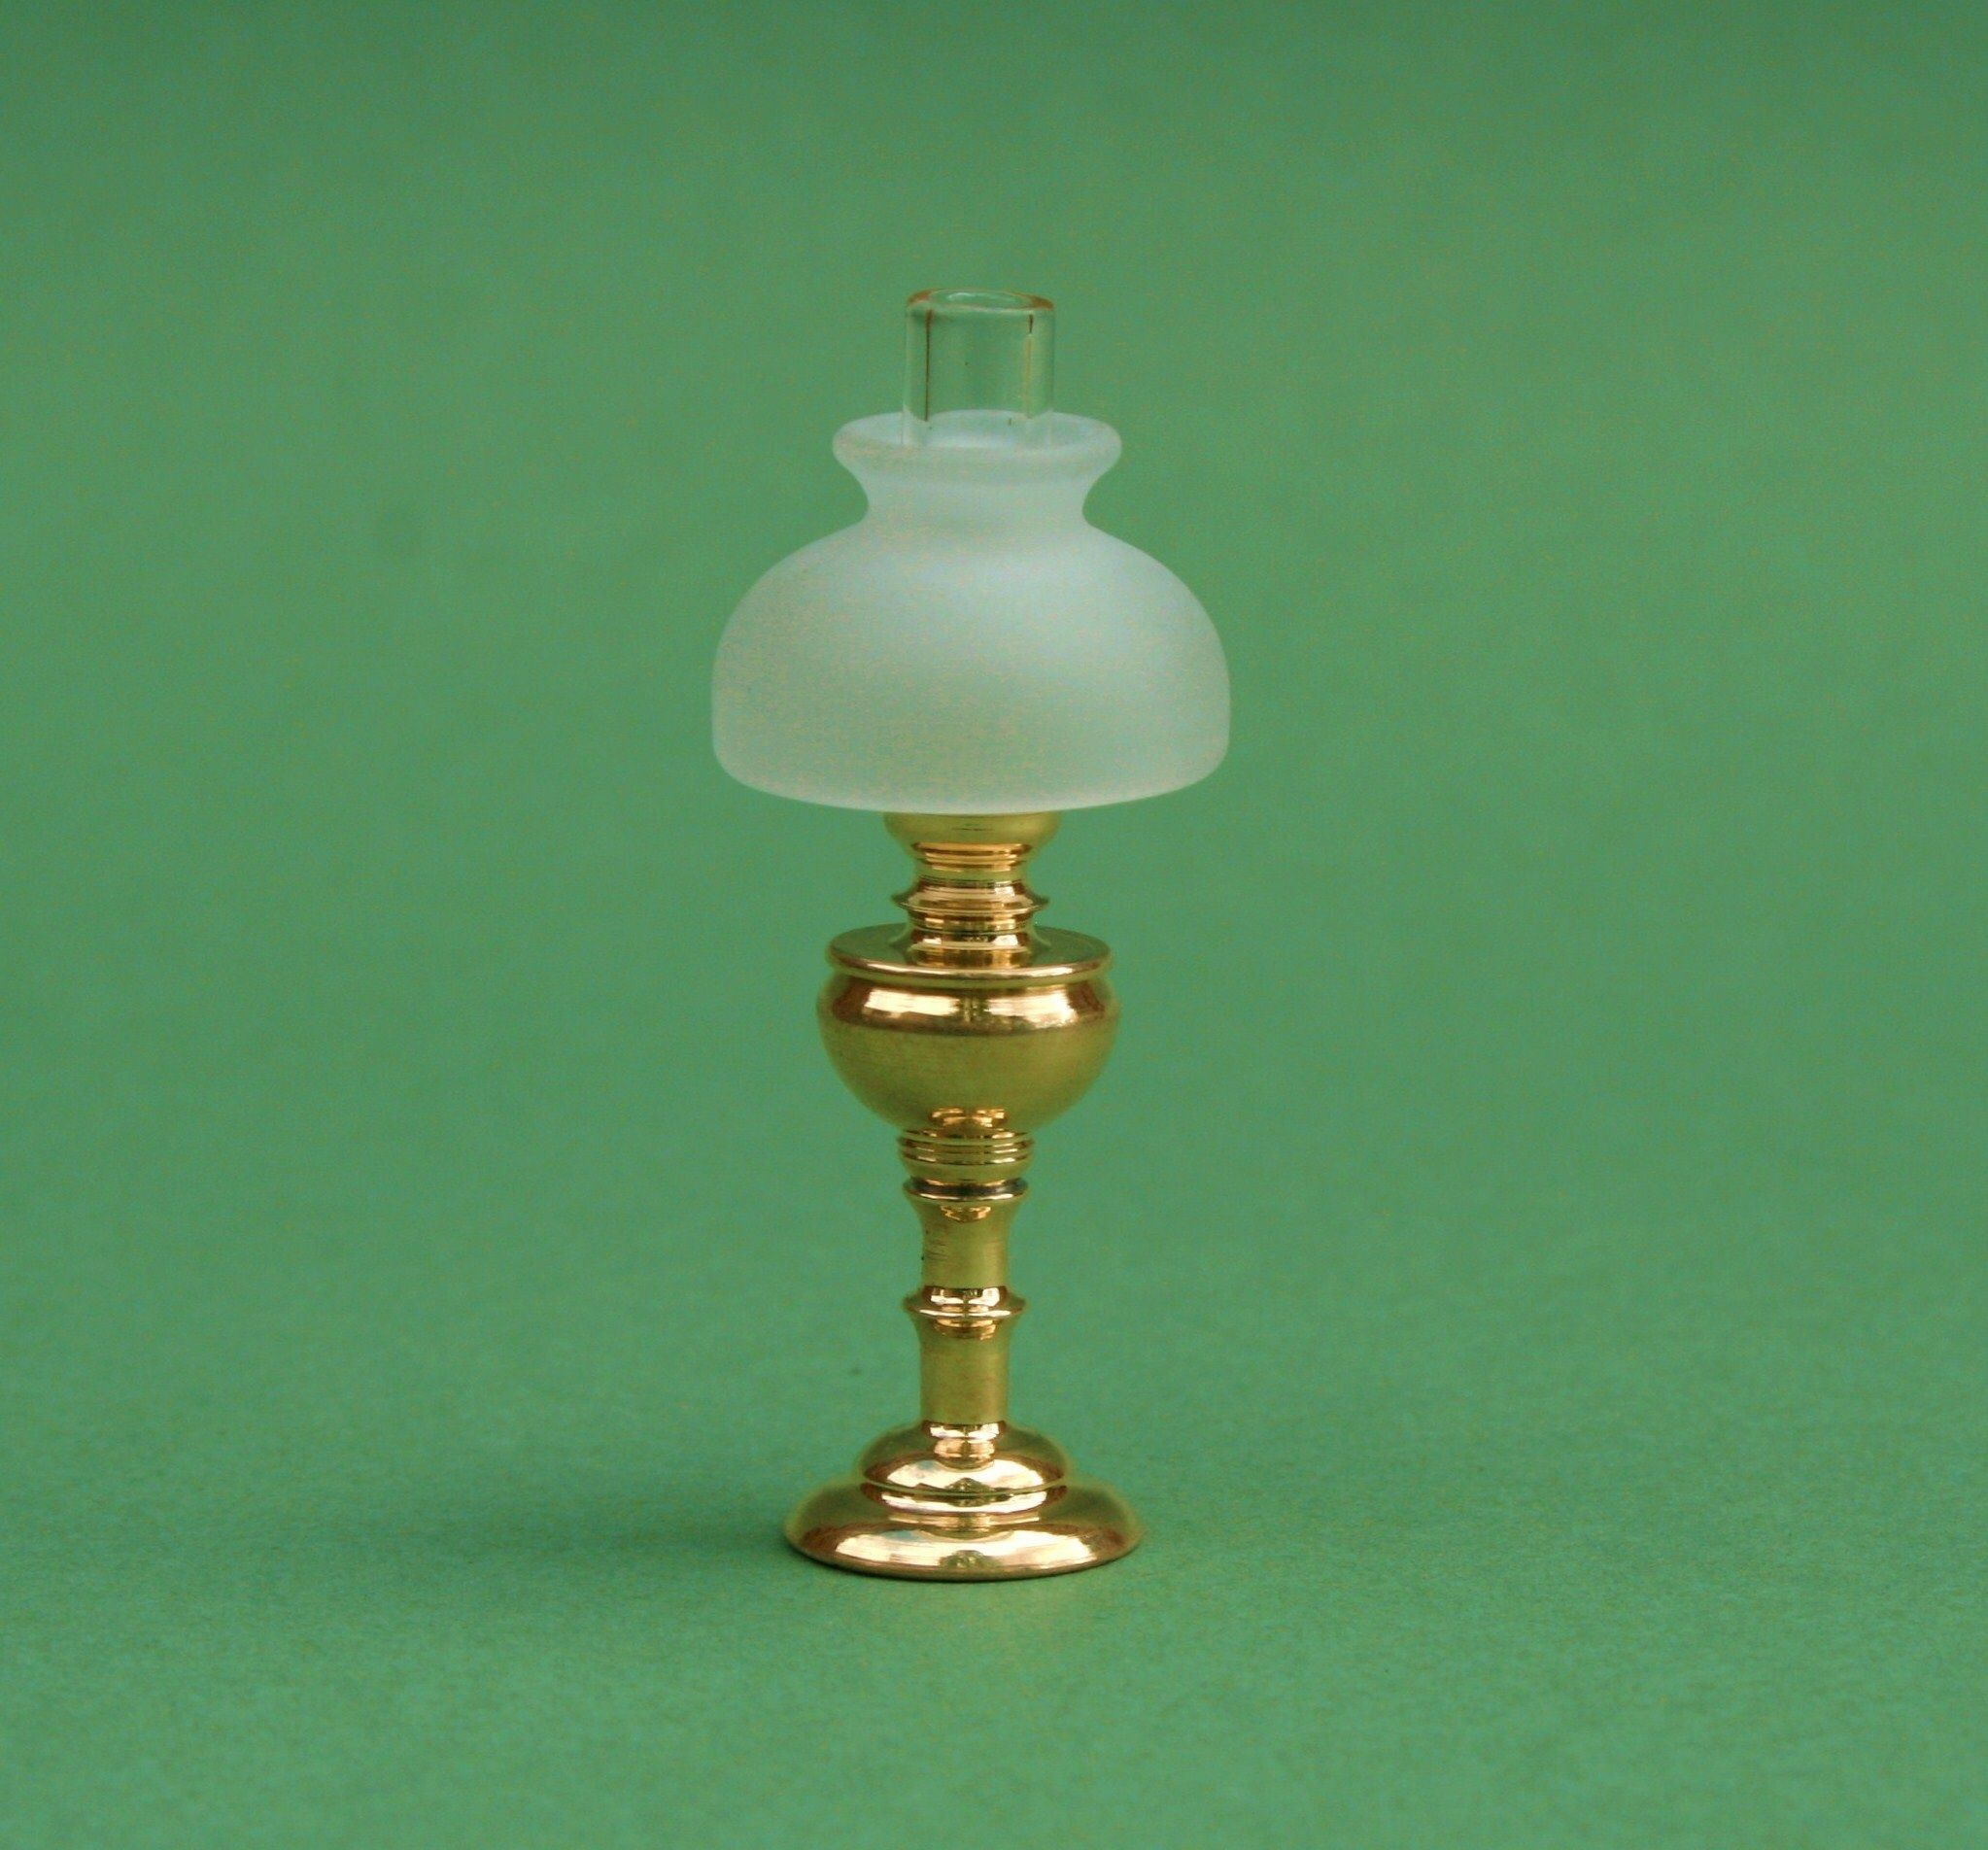 Hand Turned Brass Table Lamp Finished With Clear Glass Chimney And Frosted Shade 12 Volt 21 00 Brass Table Lamps Lamp Novelty Lamp